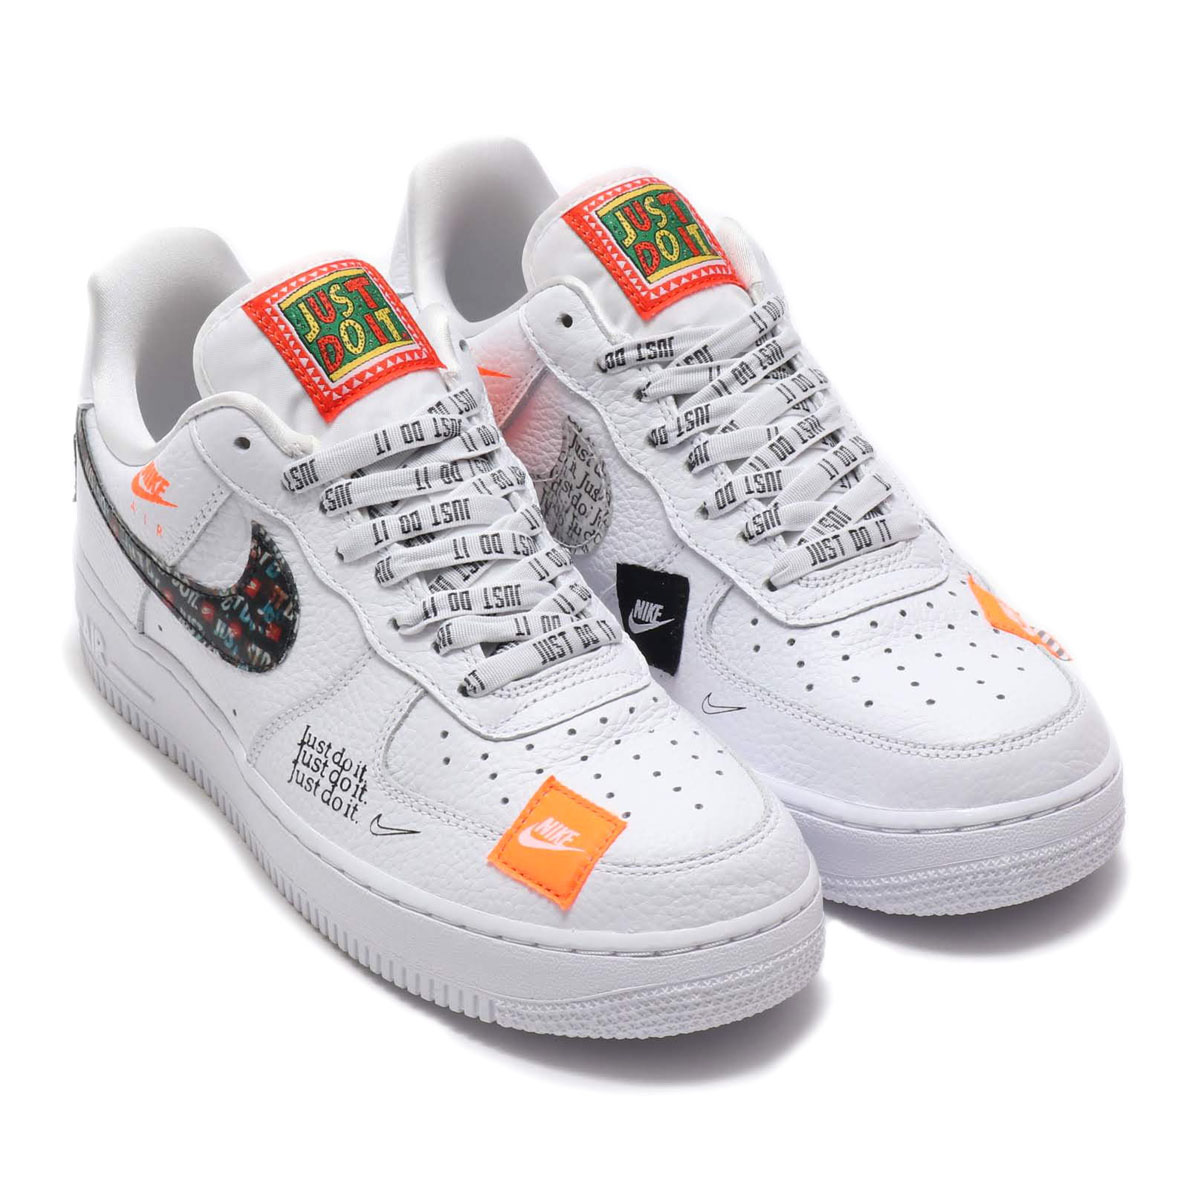 atmos pink  NIKE AIR FORCE 1  07 PRM JDI (Nike air force 1 07 premium JDI)  WHITE WHITE-BLACK-TOTAL ORANGE 18FA-S  1e1575527